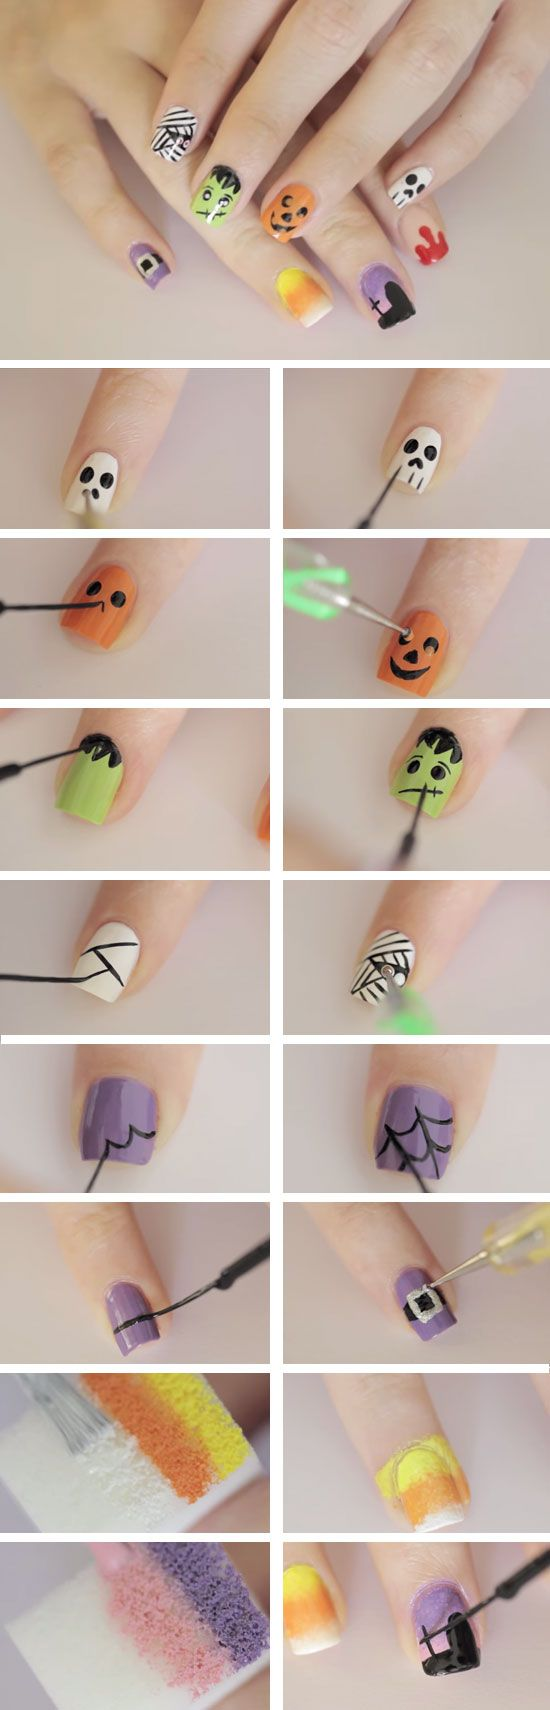 Ghoulish Shapes + Figures | Click Pic for 23 Spooky Nail Art Ideas ...